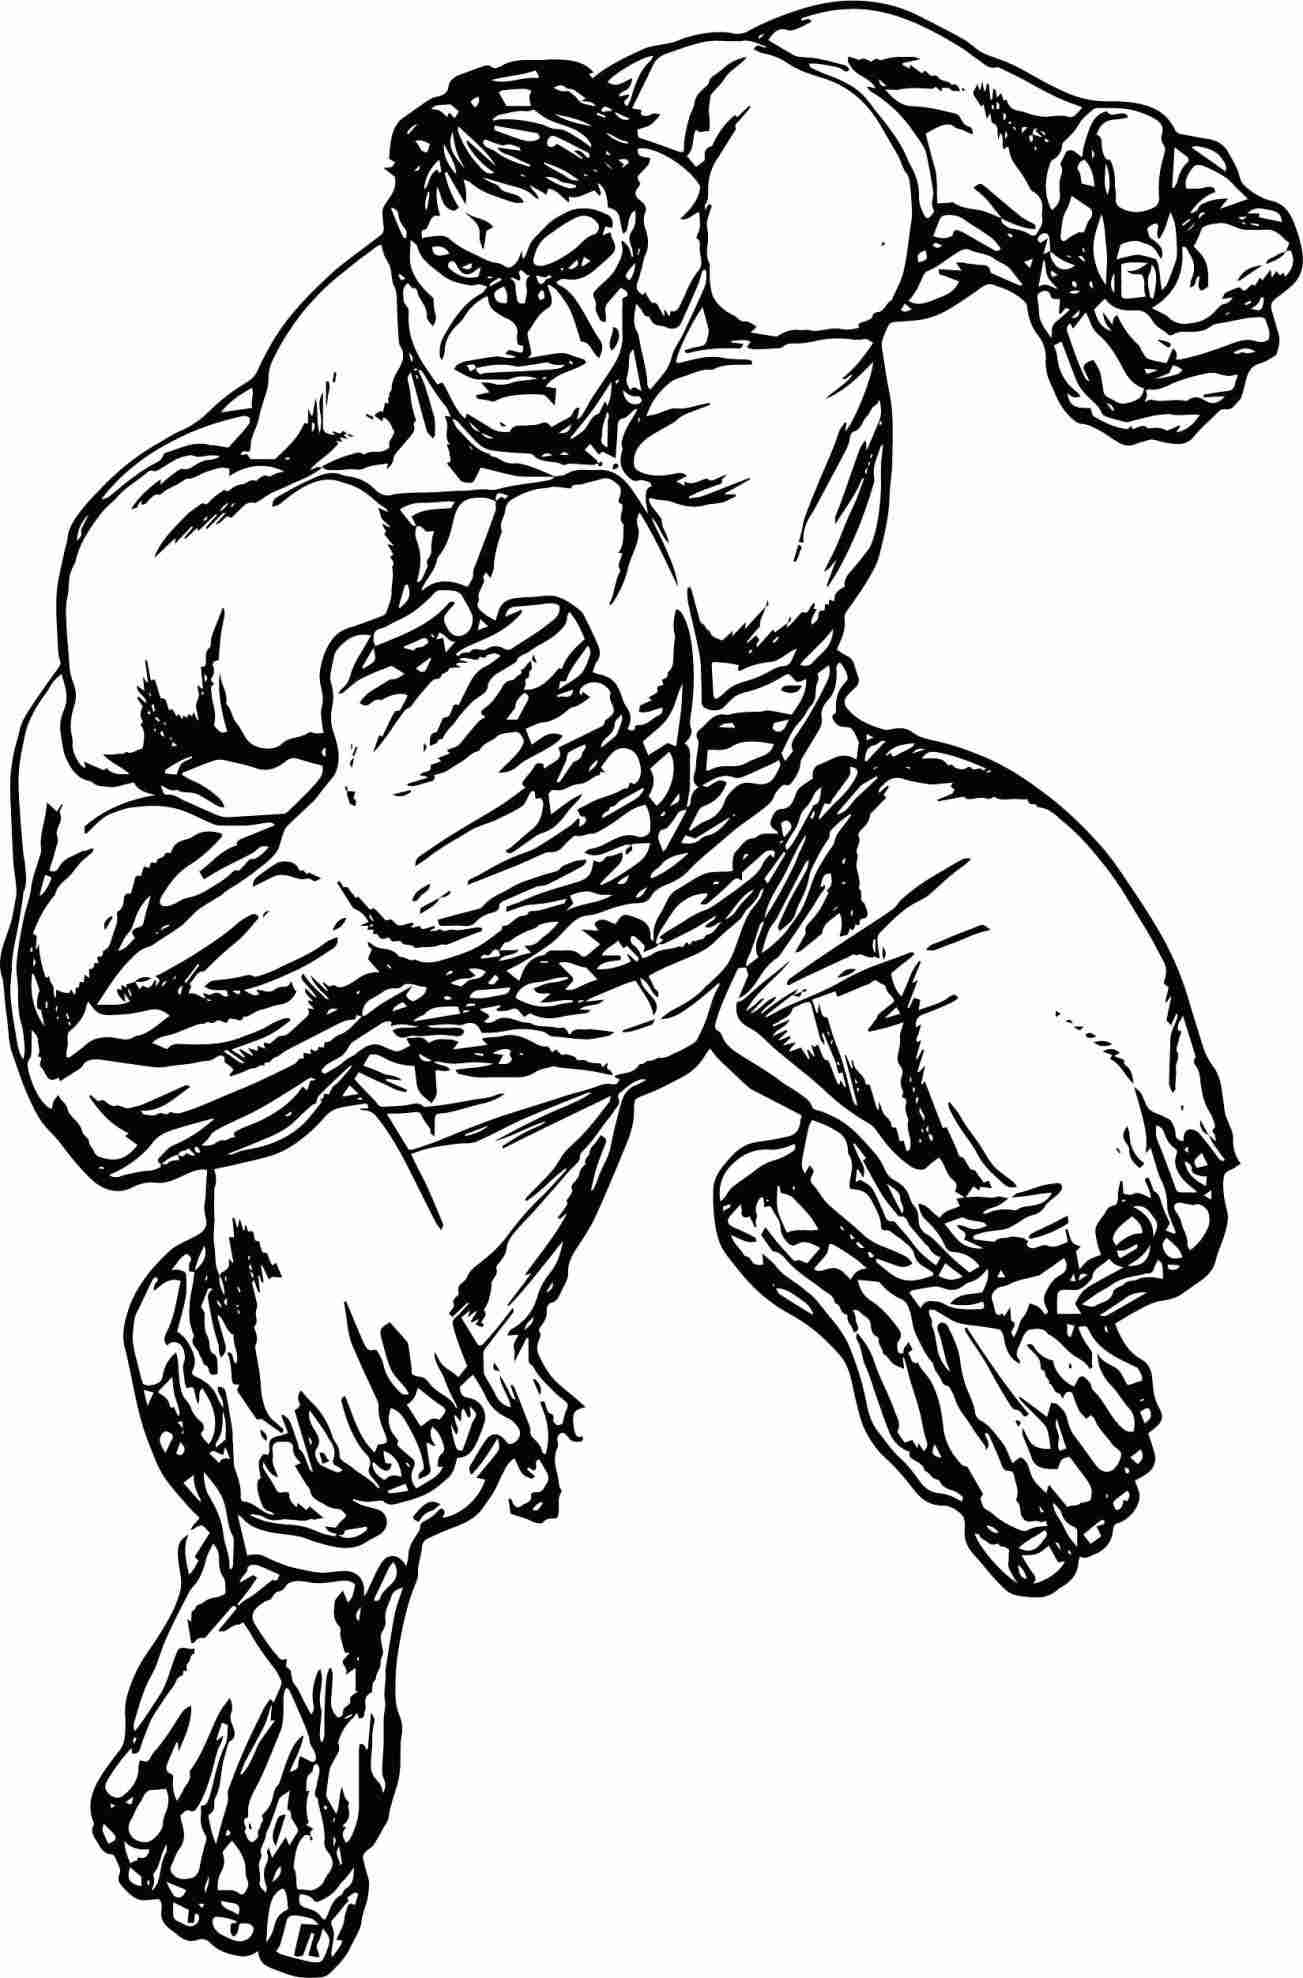 hulk outline for coloring hulk drawing easy free download on clipartmag for coloring hulk outline